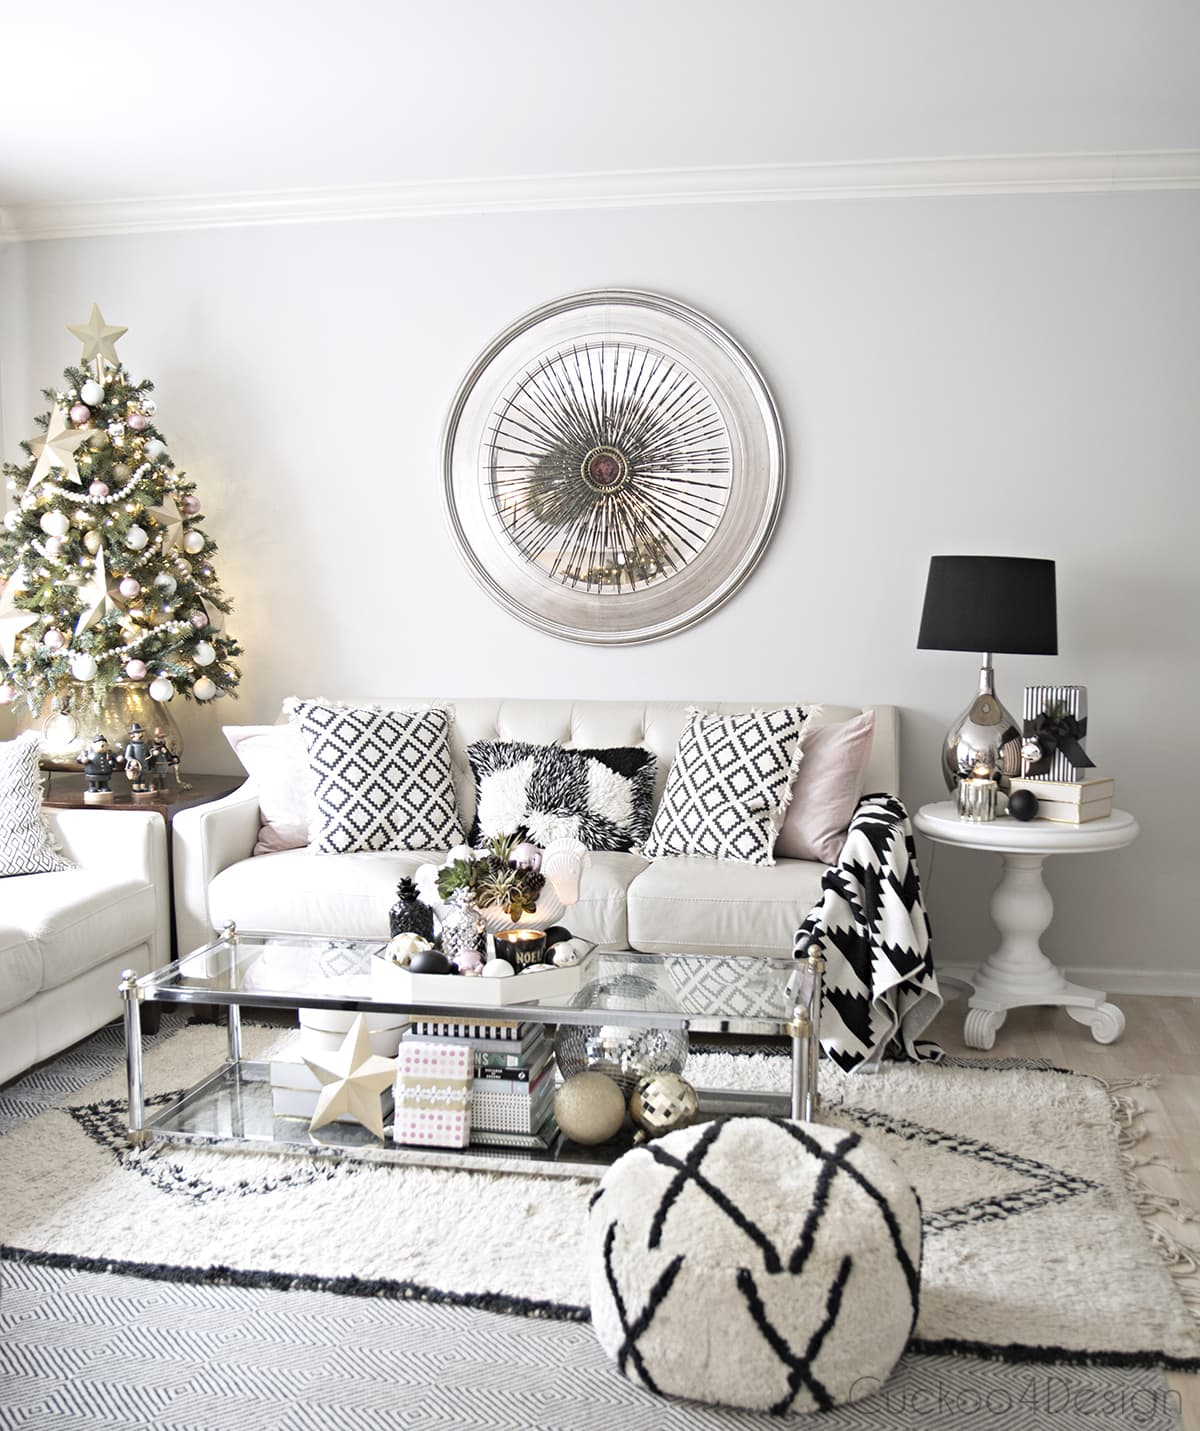 beautiful bohemian eclectic living room with black and white accents, mixed metallics and blush accents | vintage Curtis Jere burst over mirror | Beni Ourrain | small Christmas tree